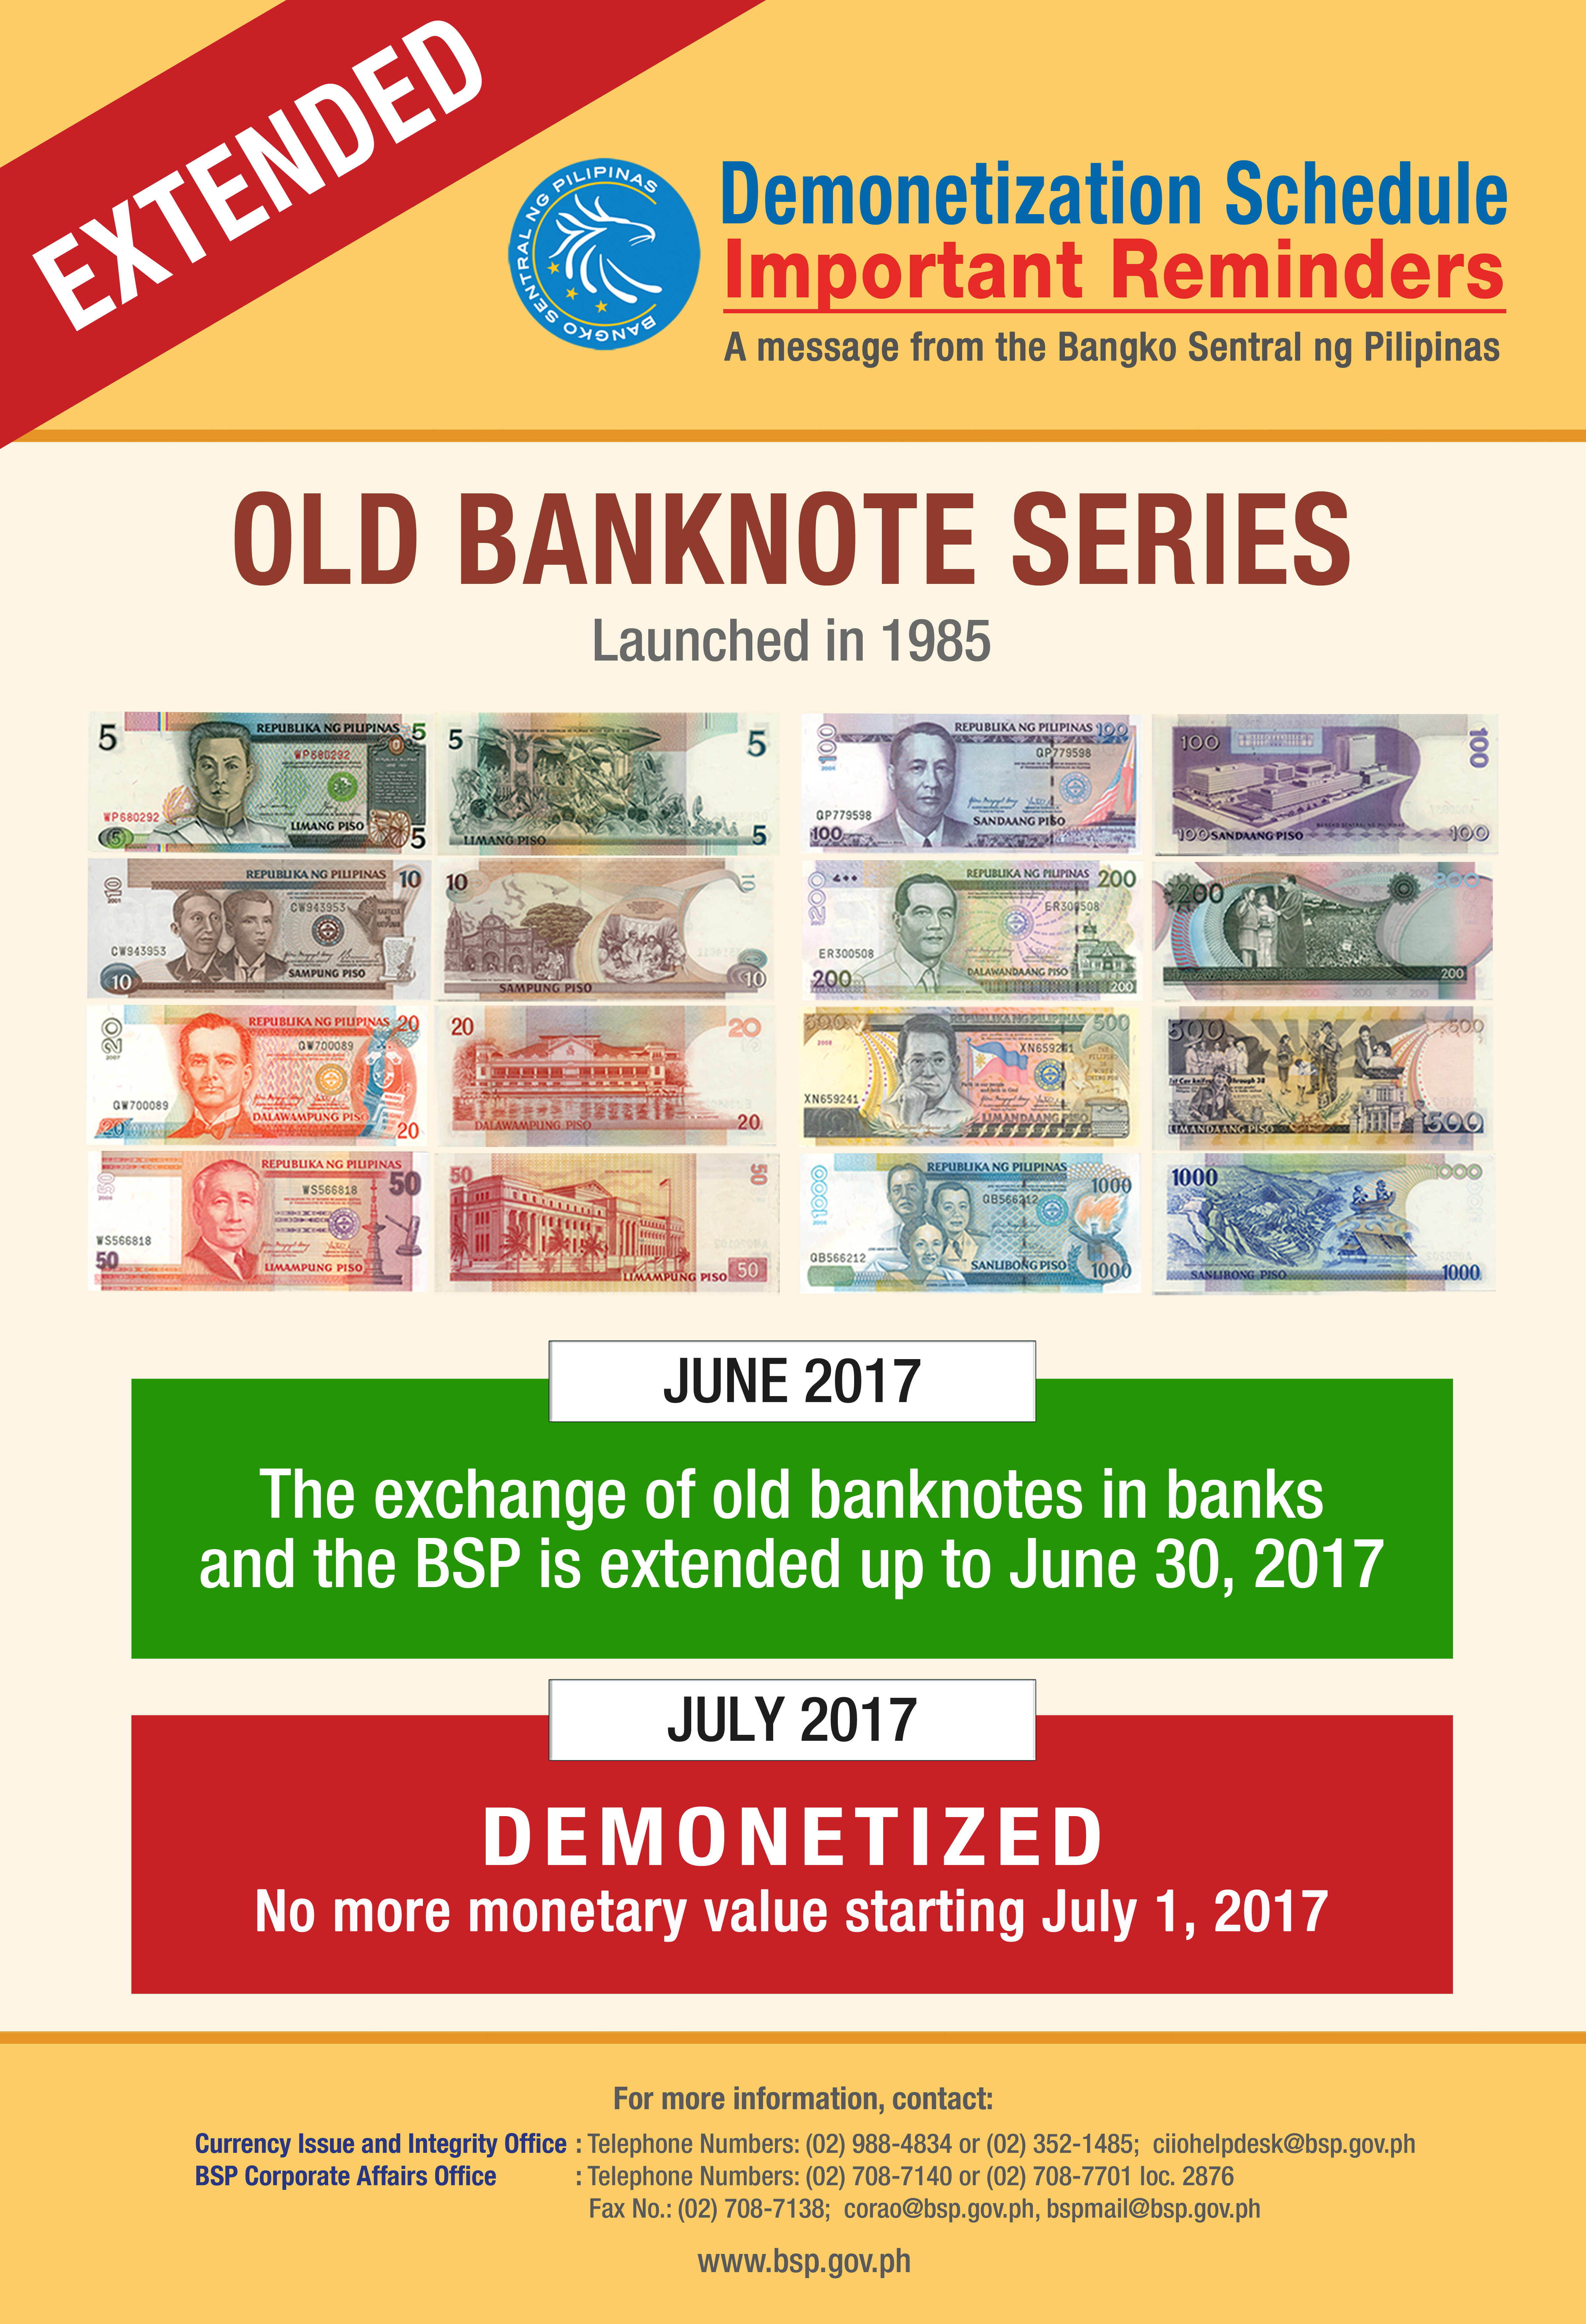 demonetization june 30, 2017